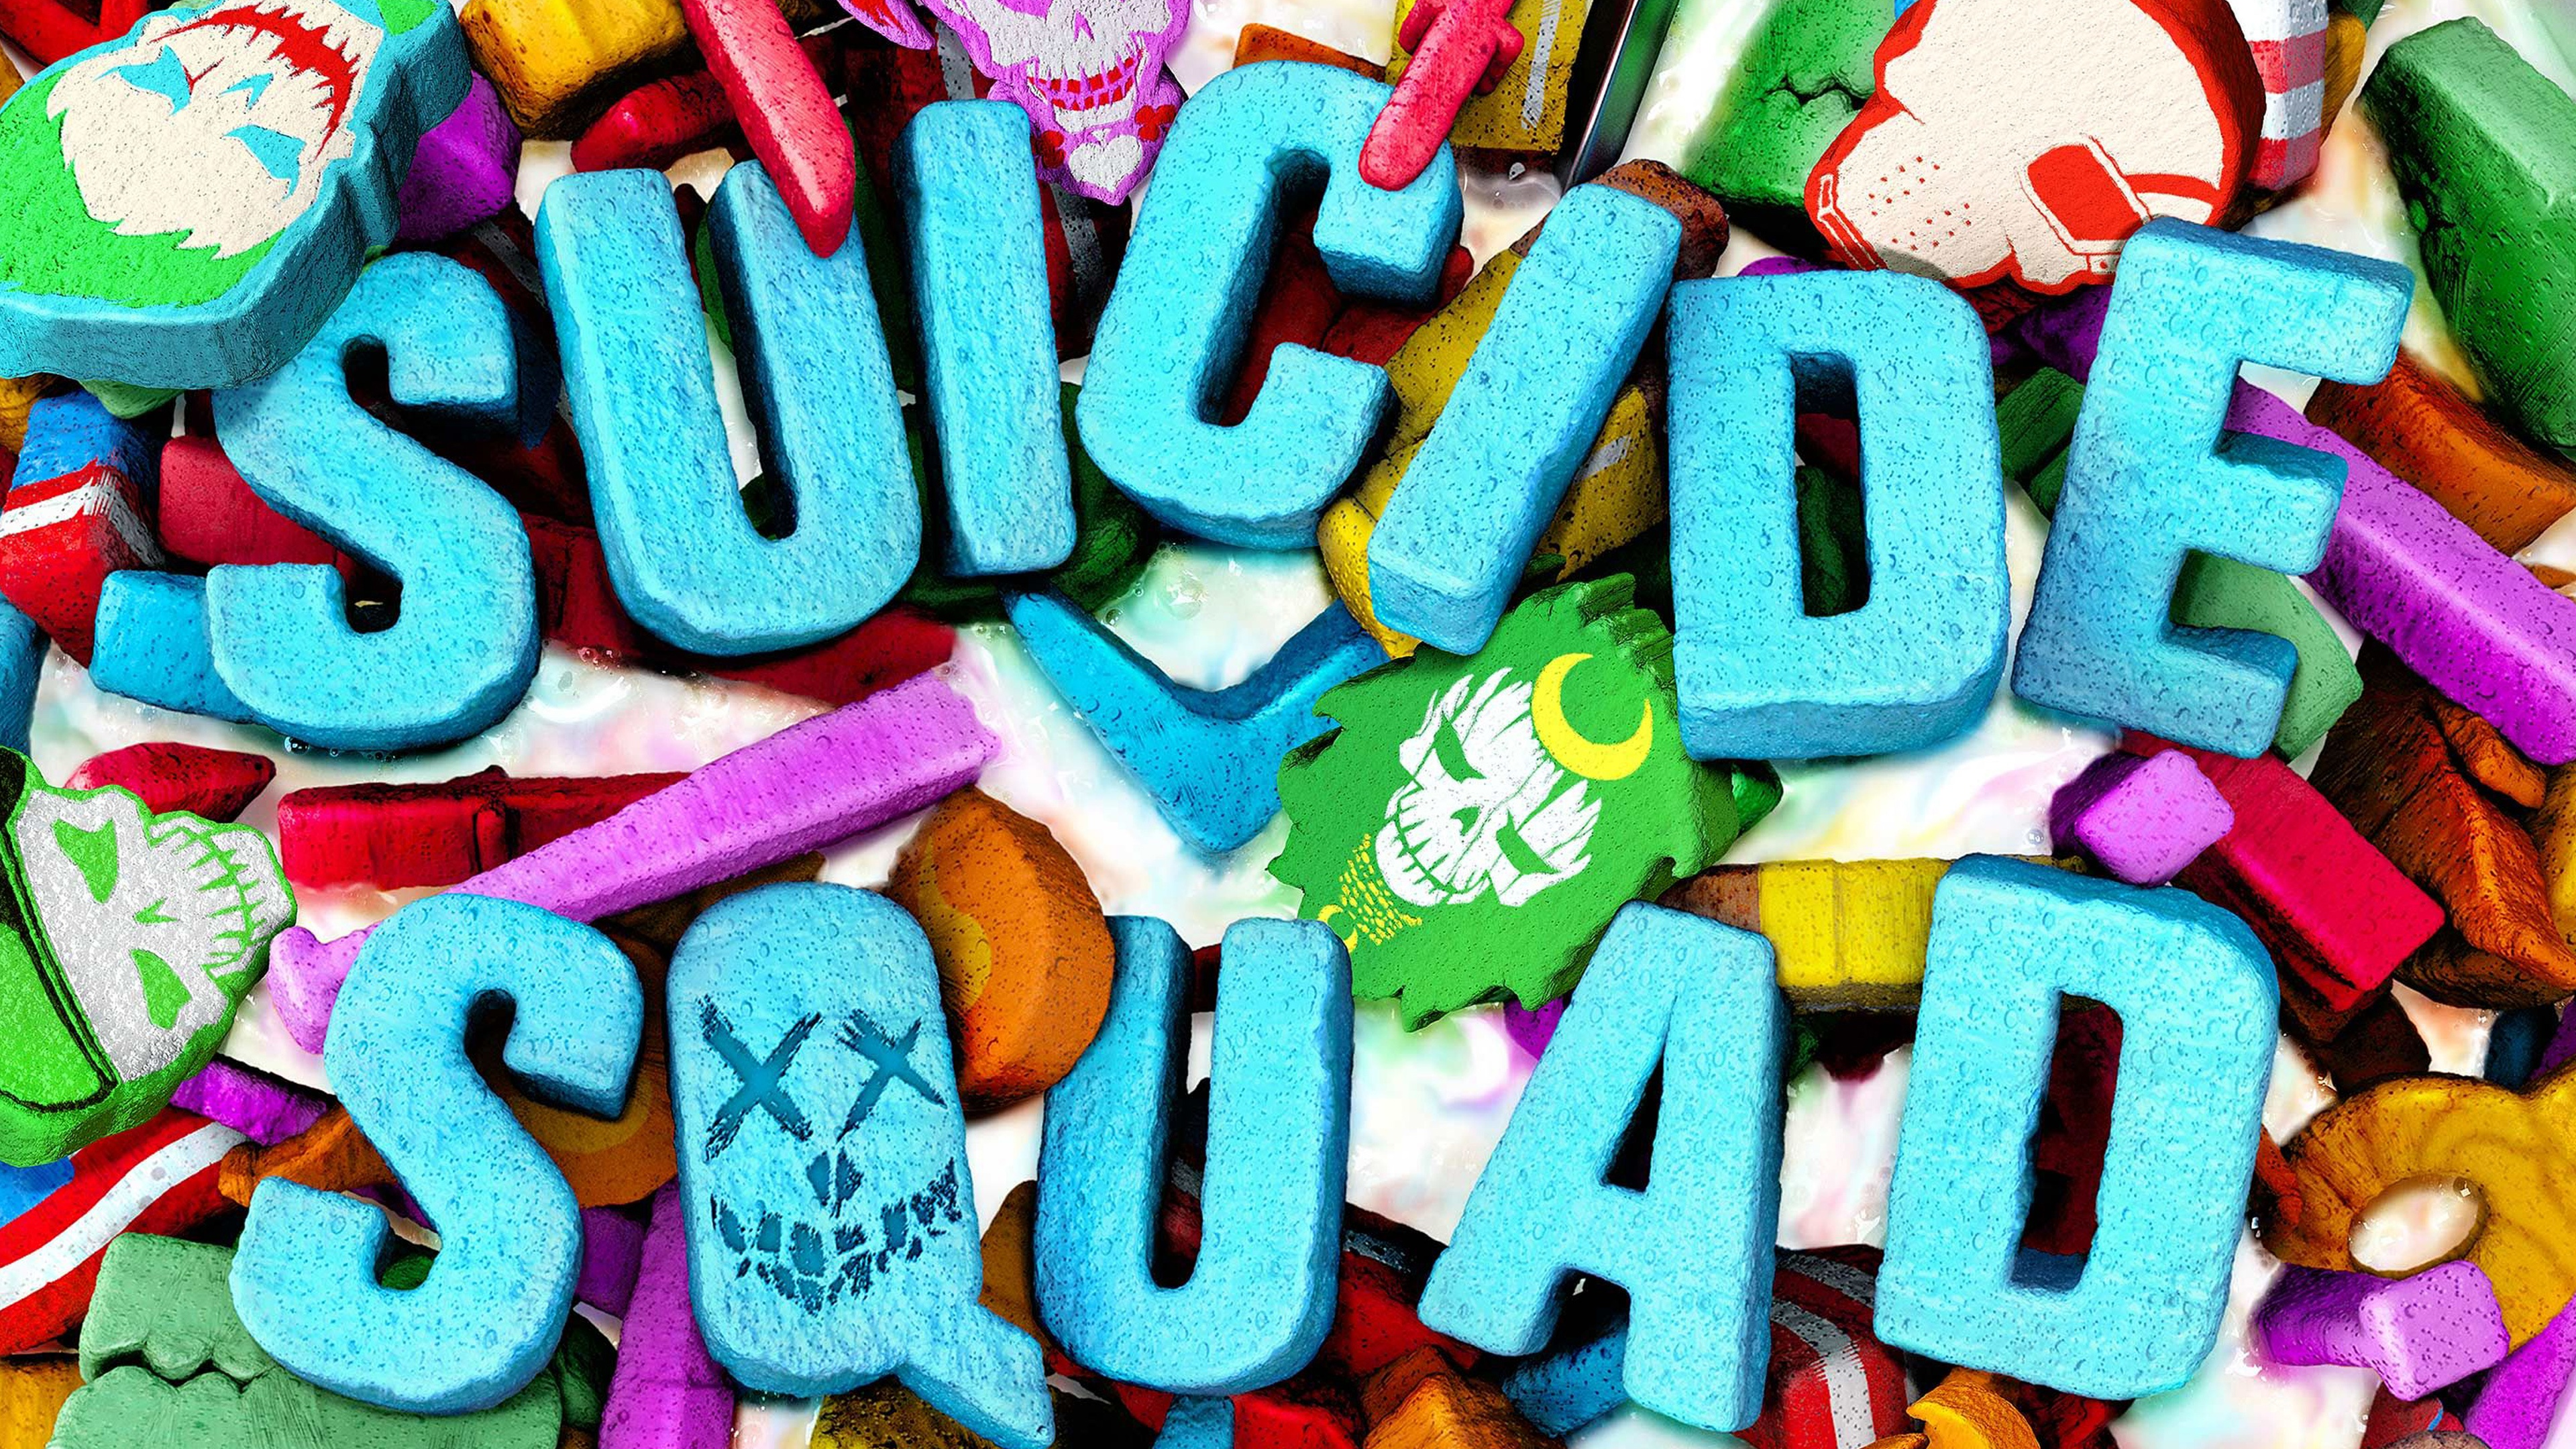 Suicide Squad 4k Wallpapers In Jpg Format For Free Download